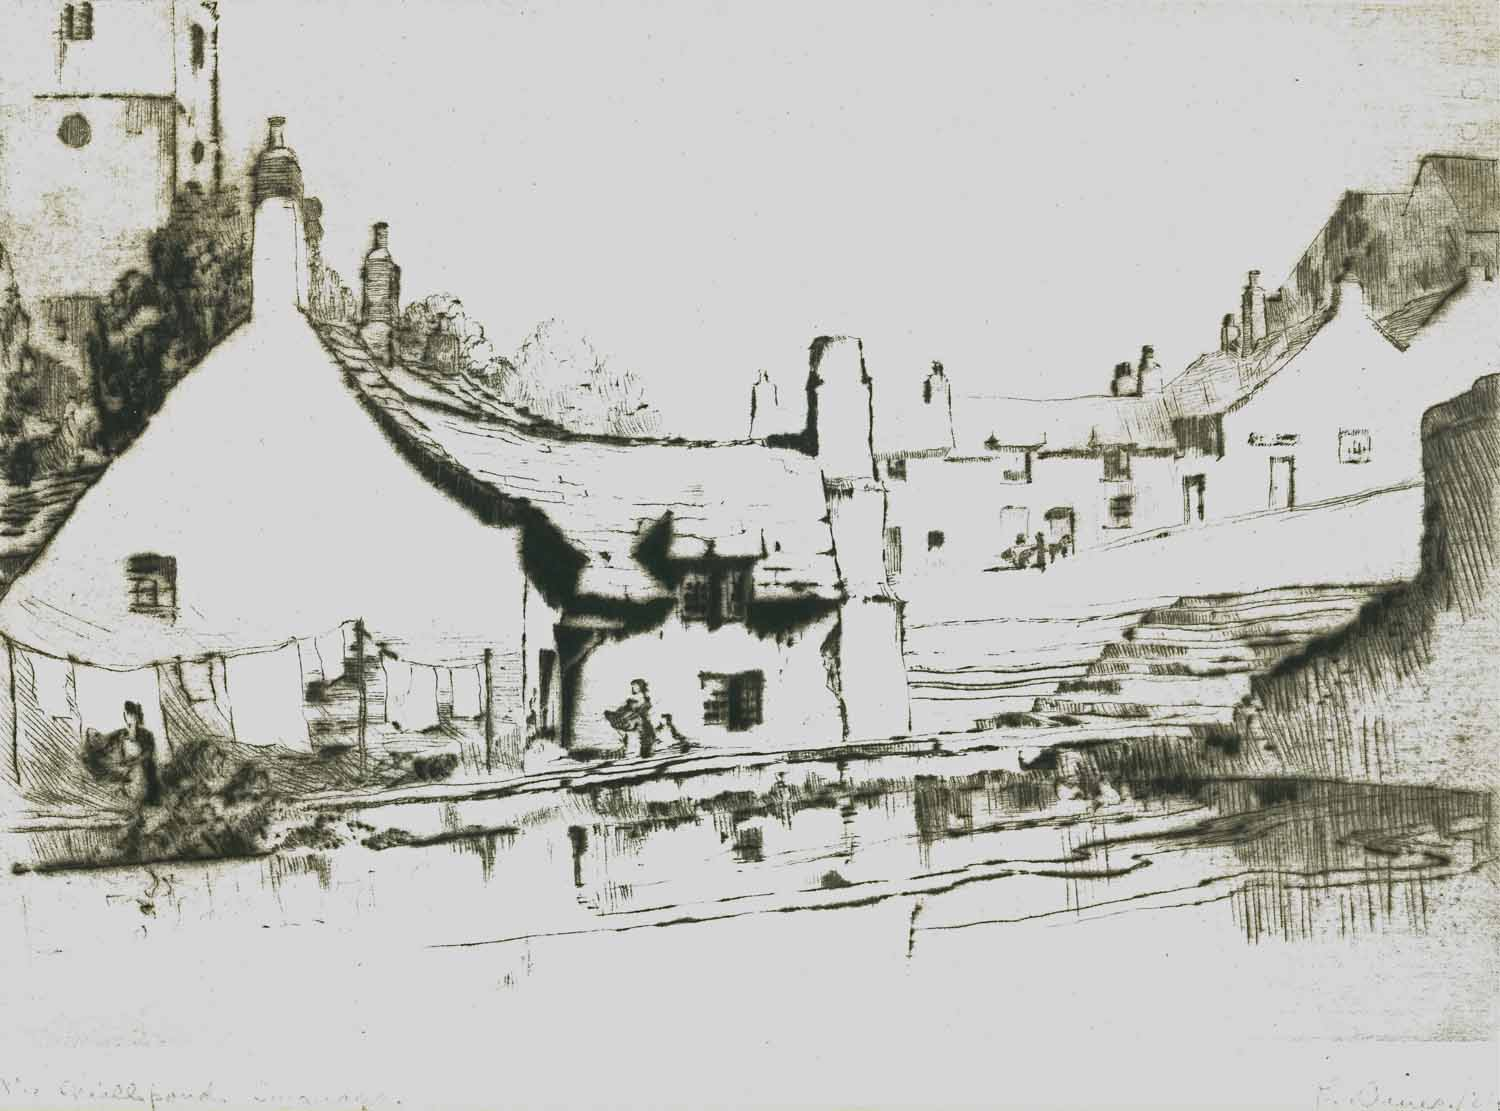 Millpond Swanage, drypoint engraving